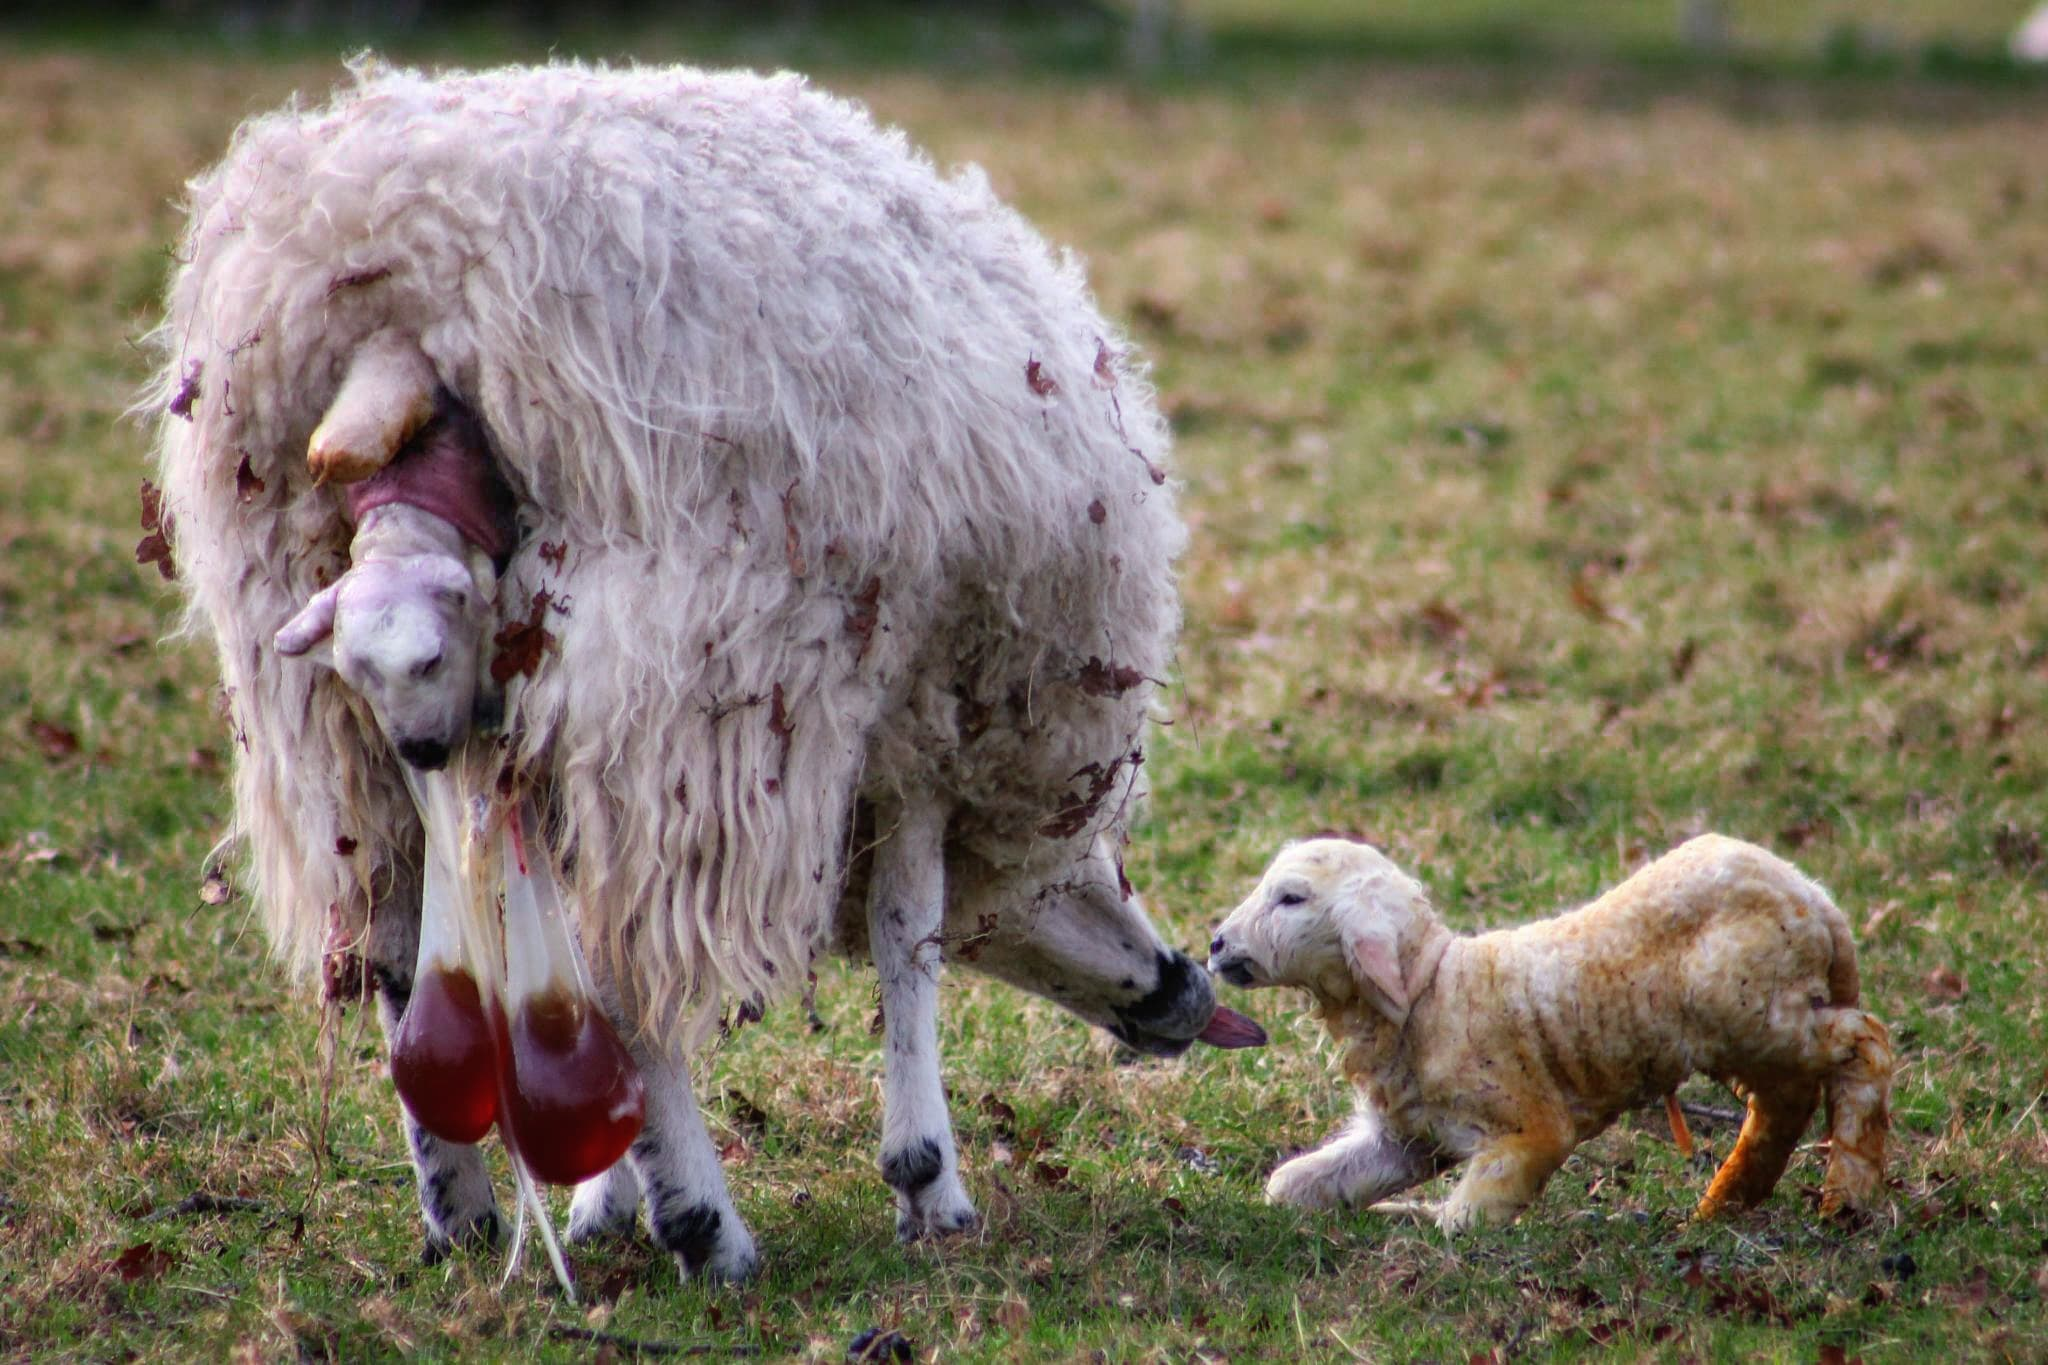 Lambing time in England. Photo by Karen Roe, licensed CC-2.0.